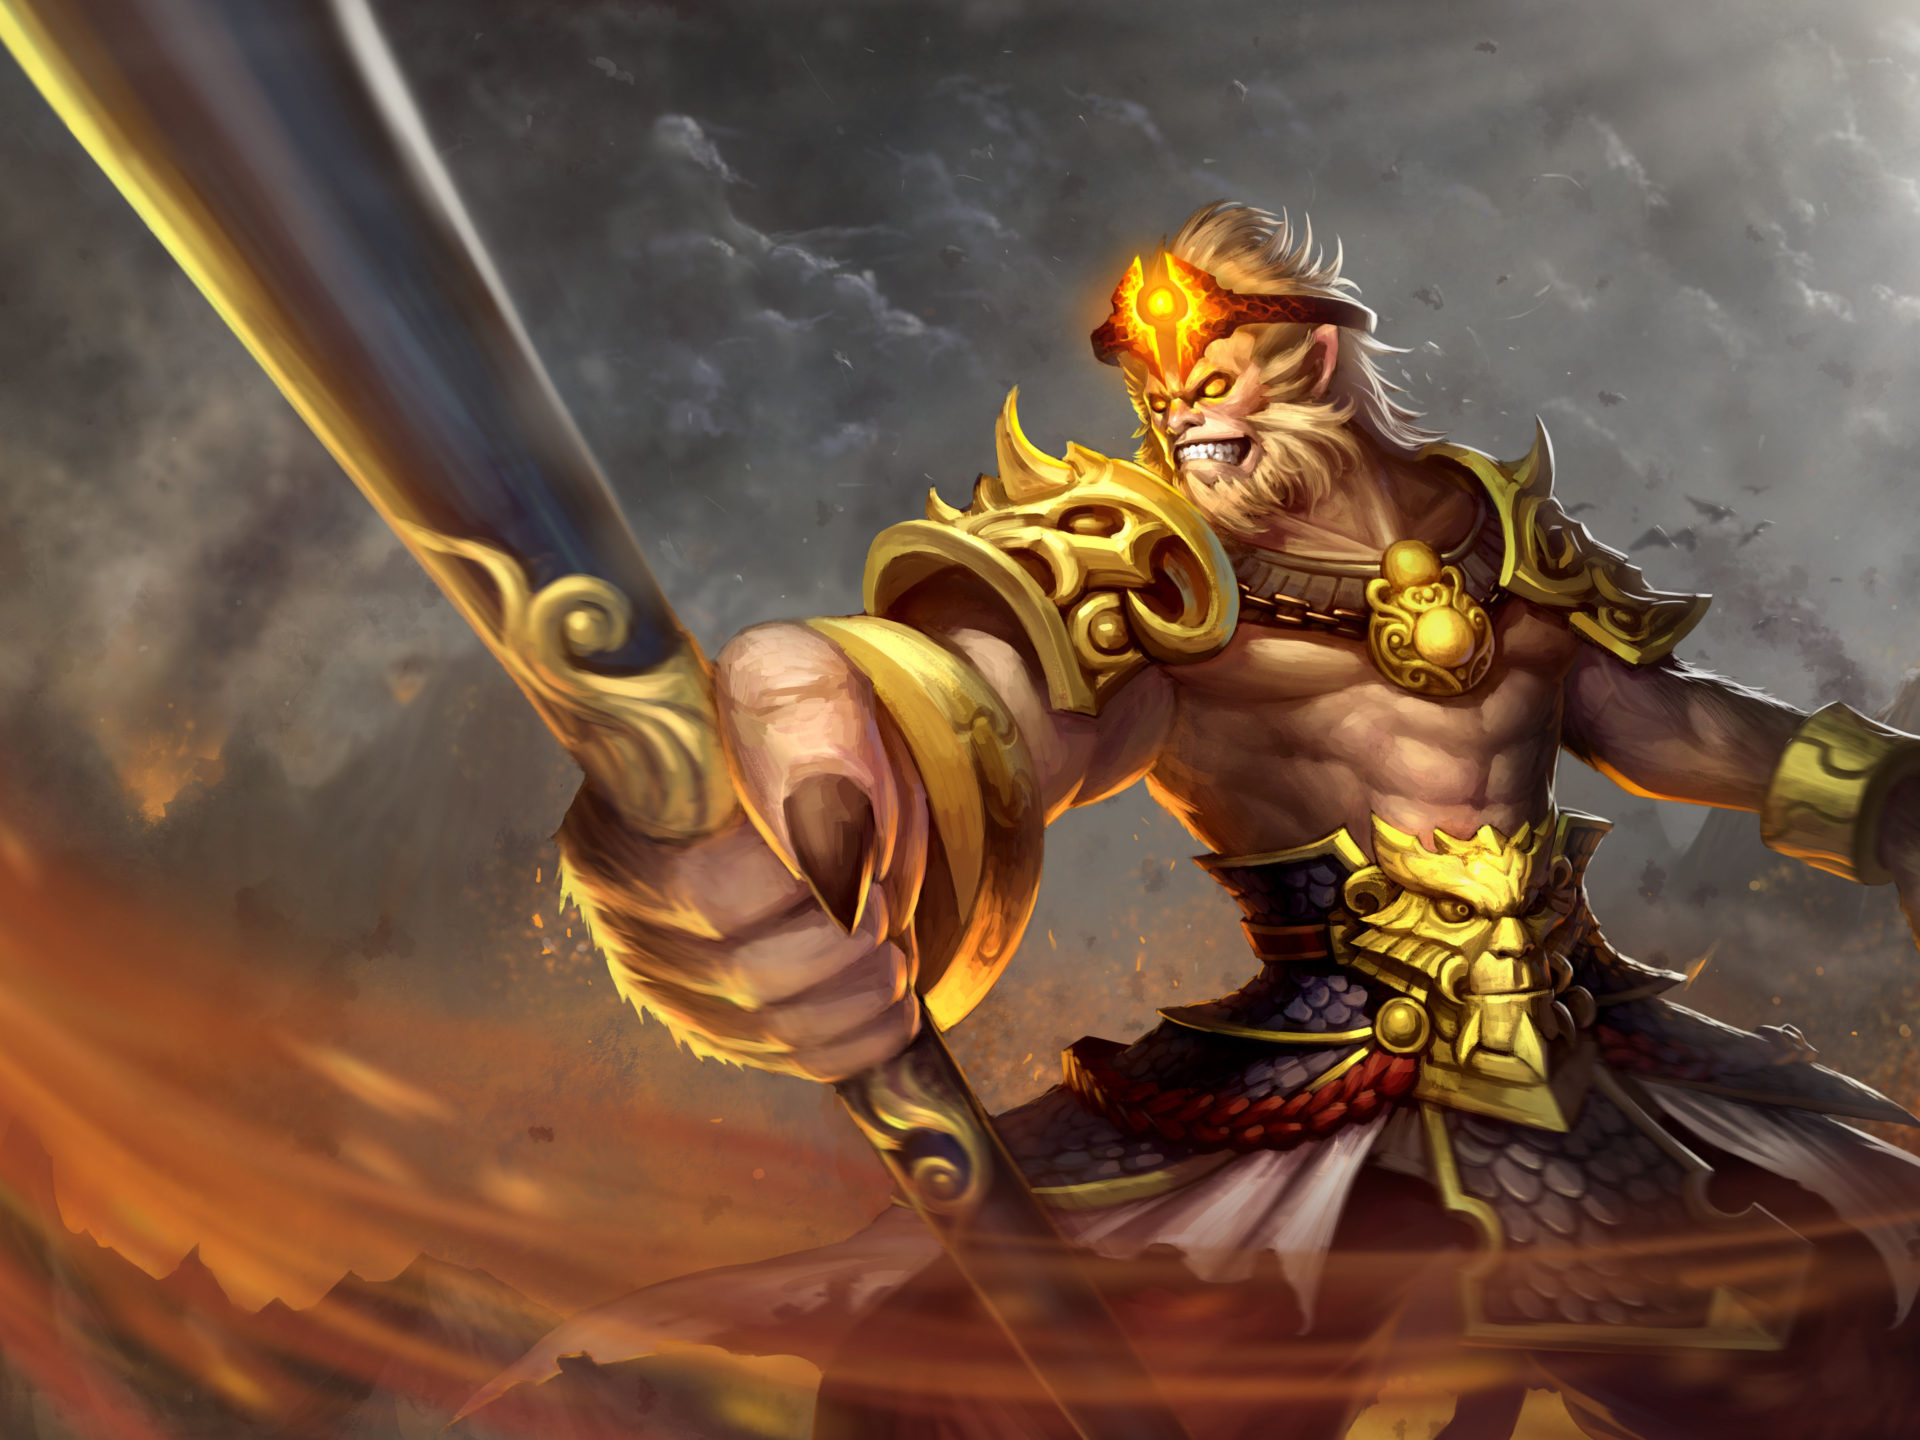 Zhou Xingchi Sun Wukong Monkey King Dota 2 Skin Art Wallpaper Hd 6000x3600